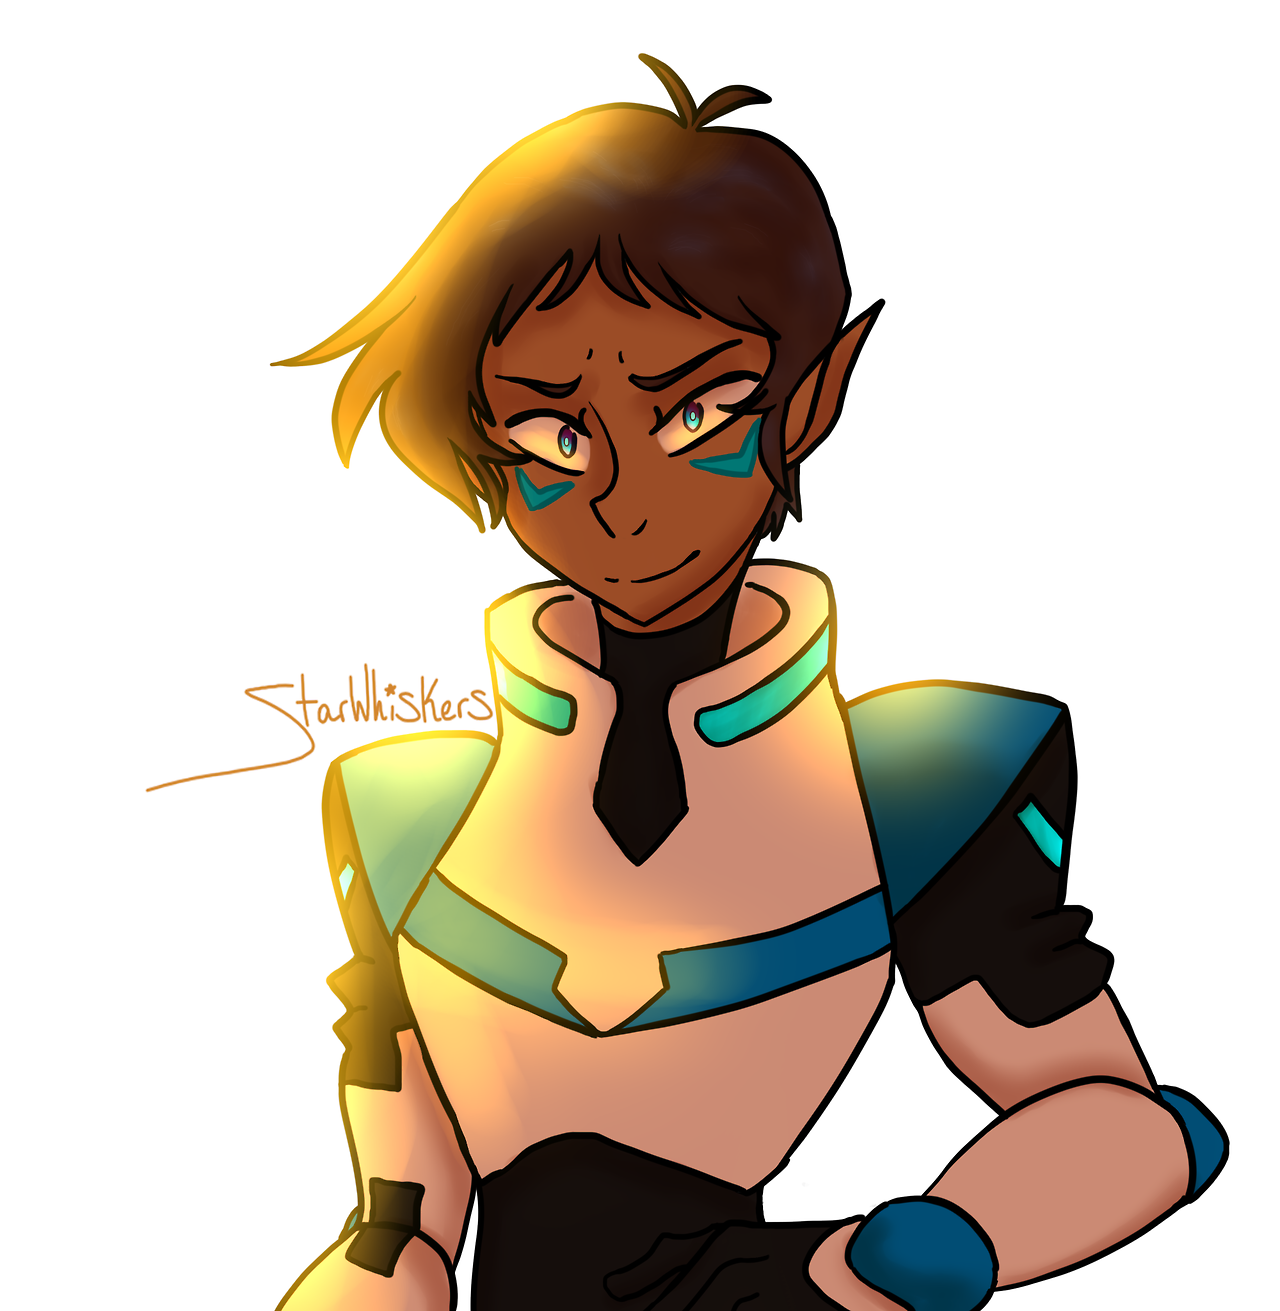 [shows up late to the altean lance bandwagon with starbucks]